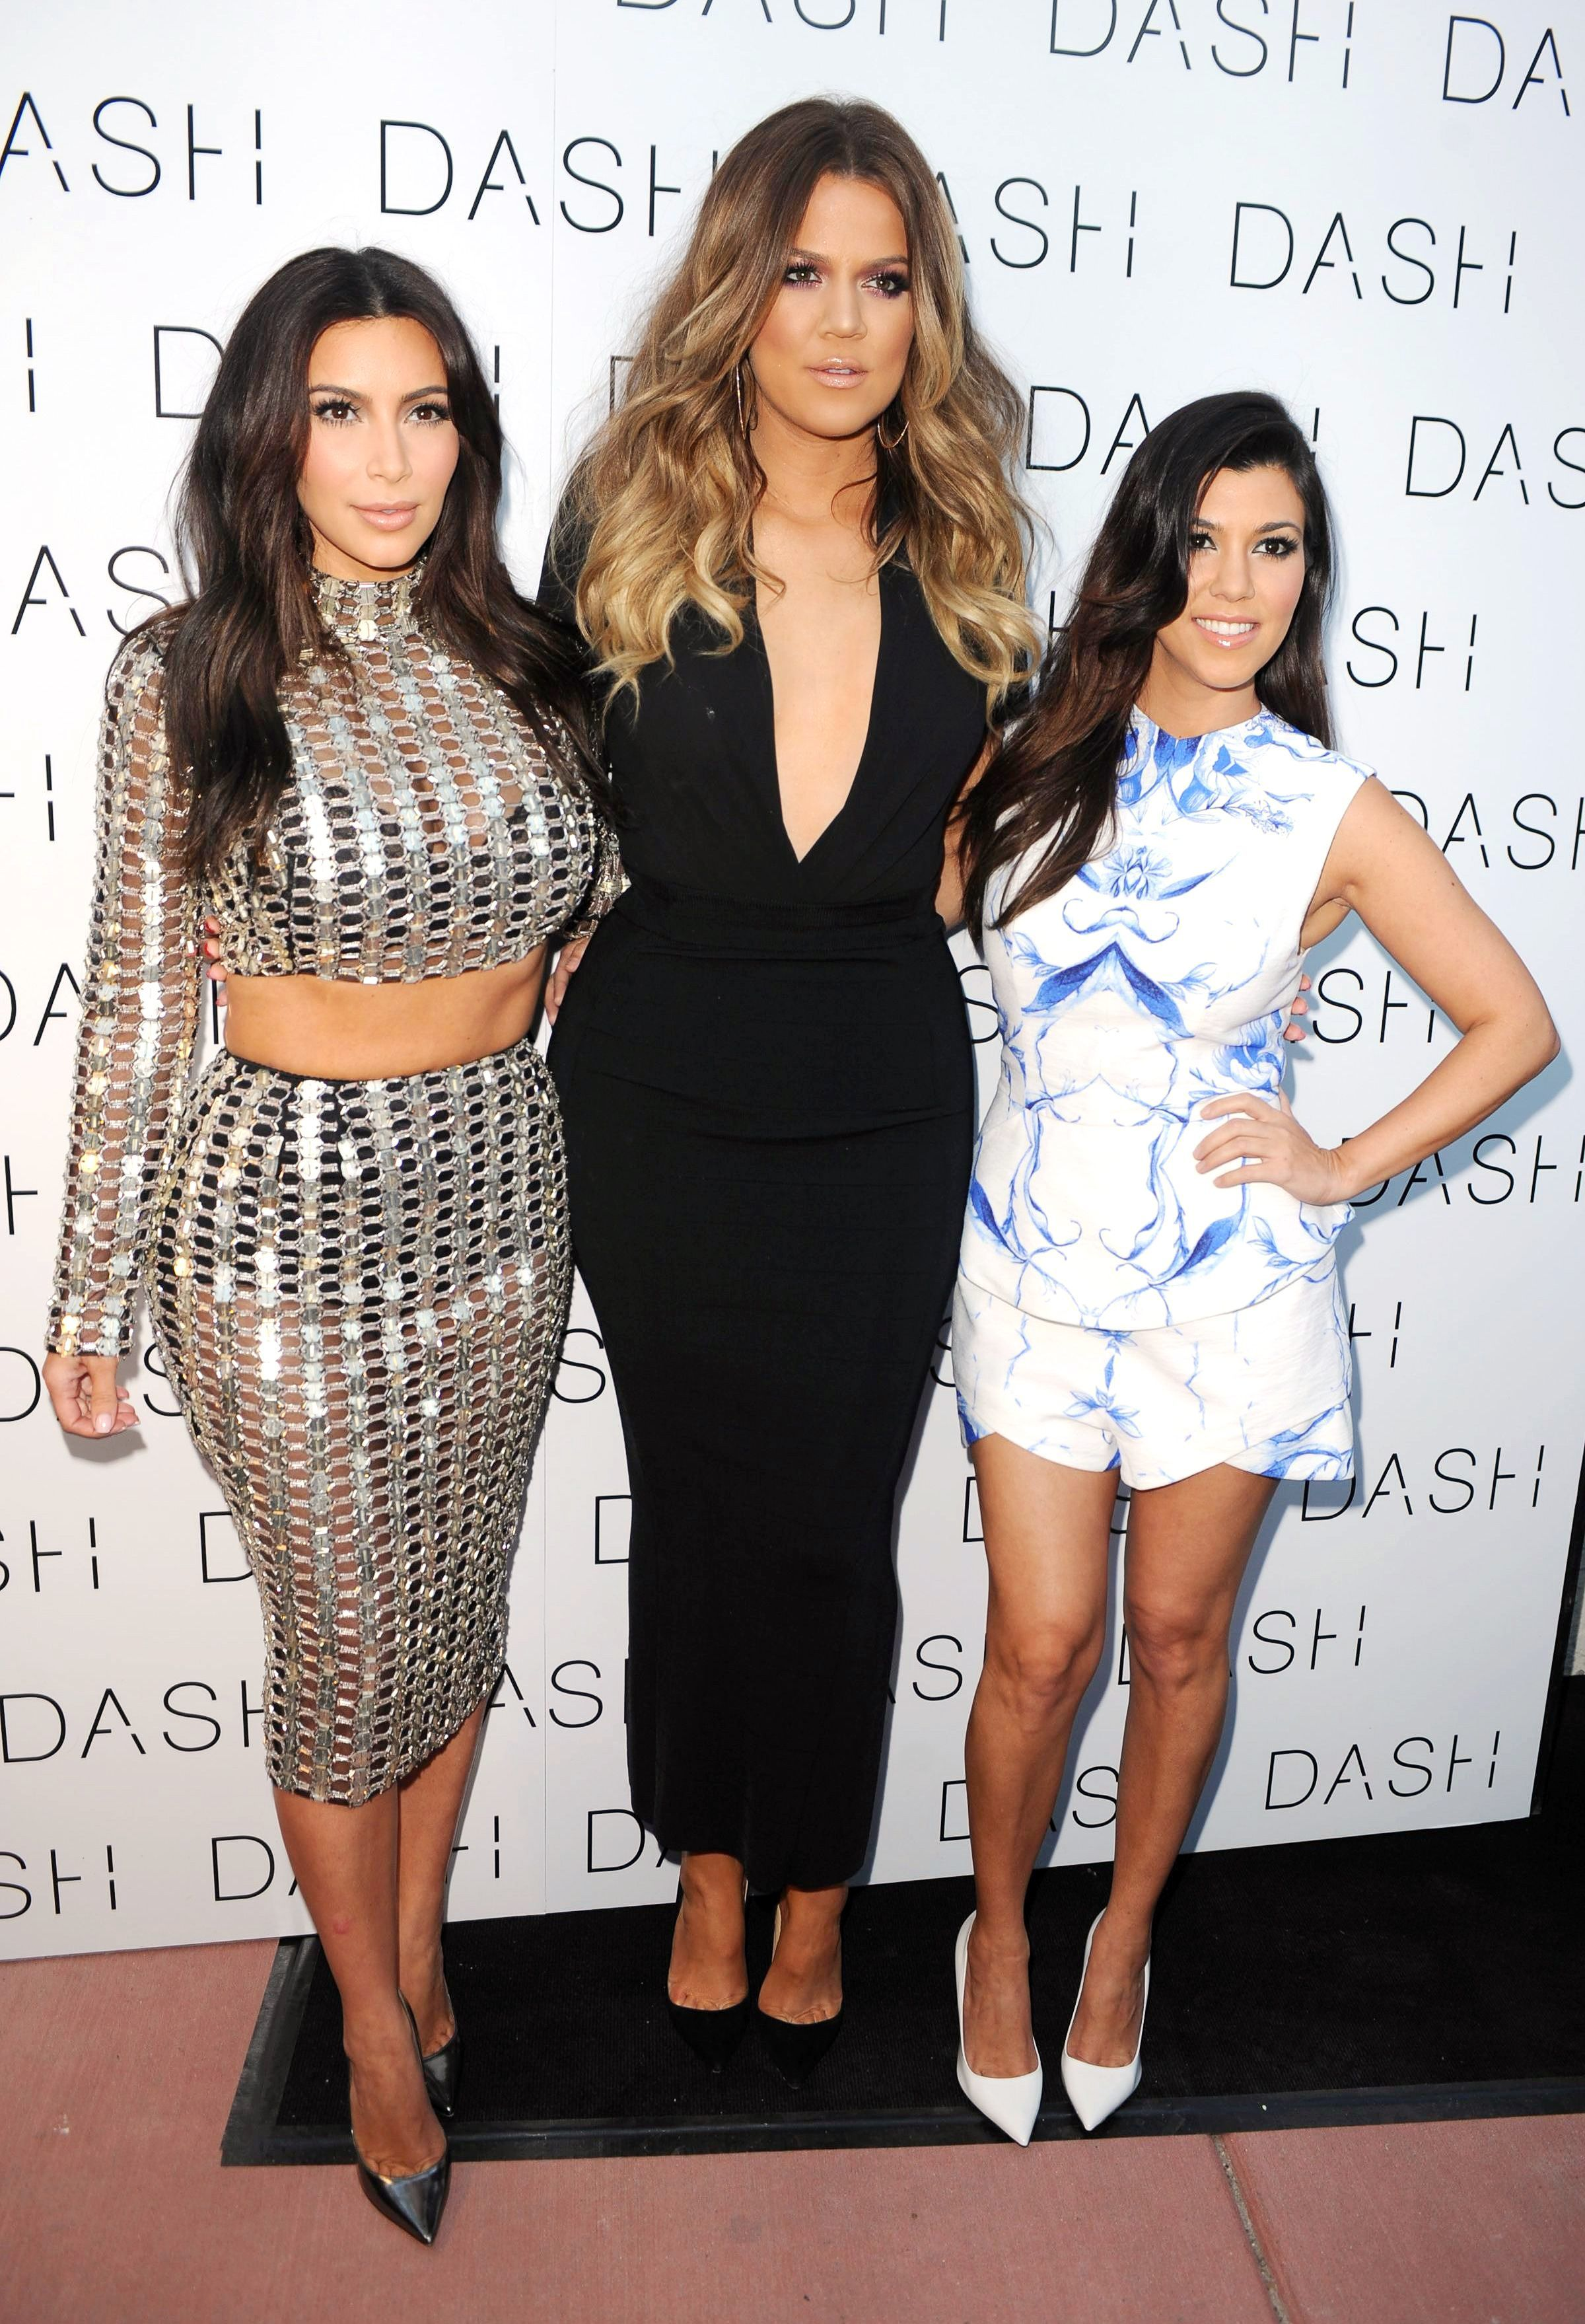 The Kardashian sisters are battling future sister in law Blac Chyna